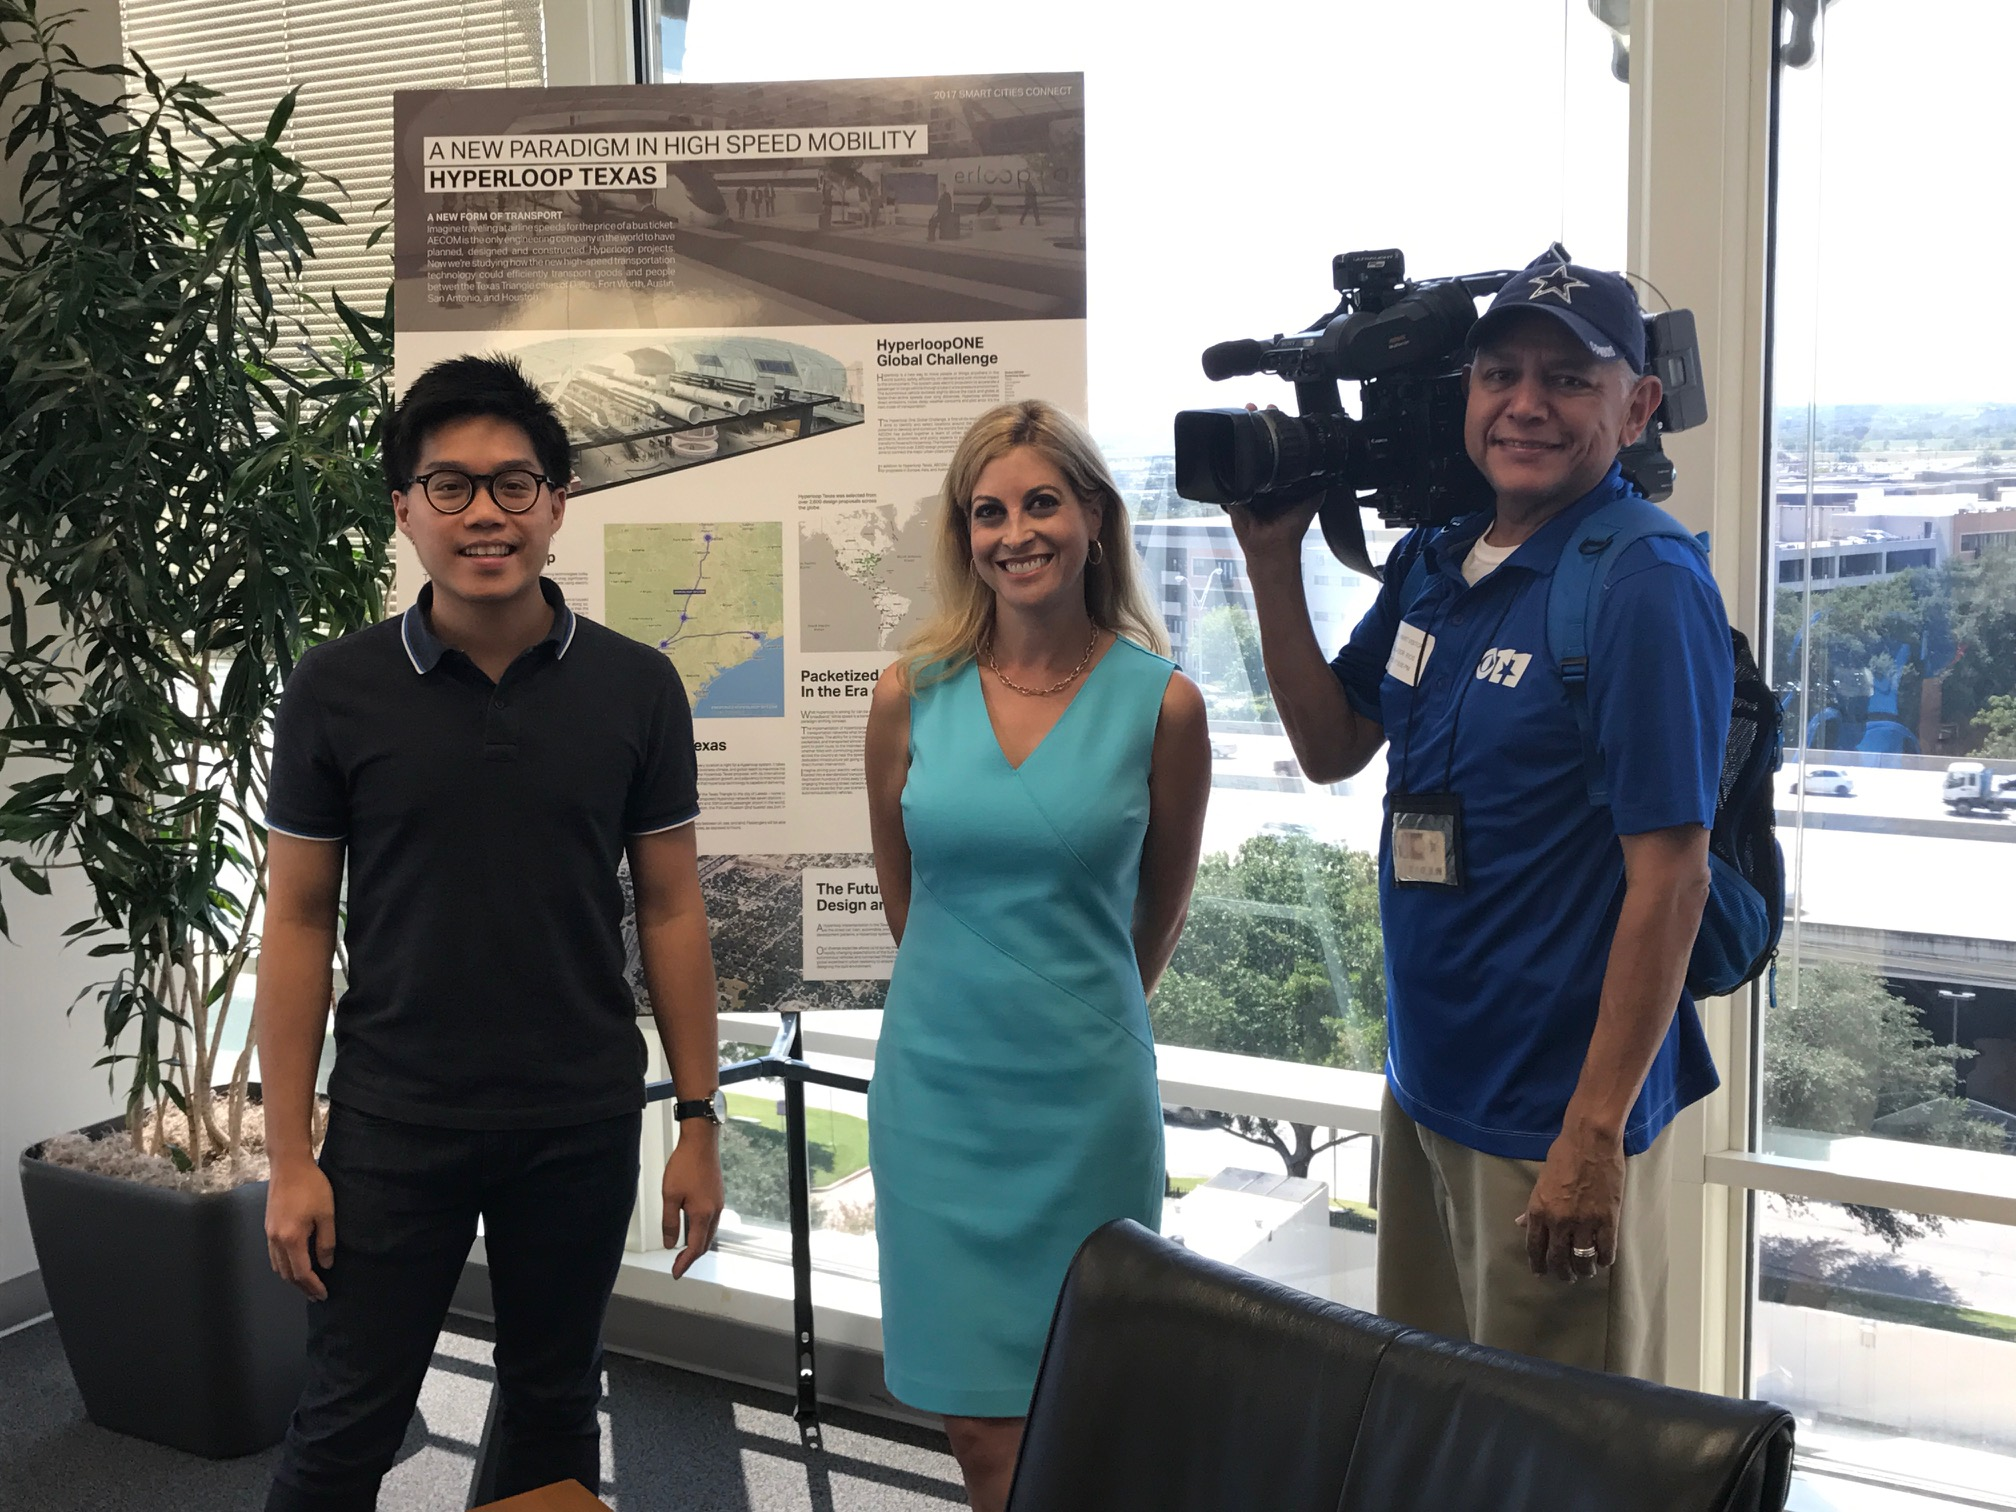 AECOM's Steven Duong poses with the CBS 11 crew